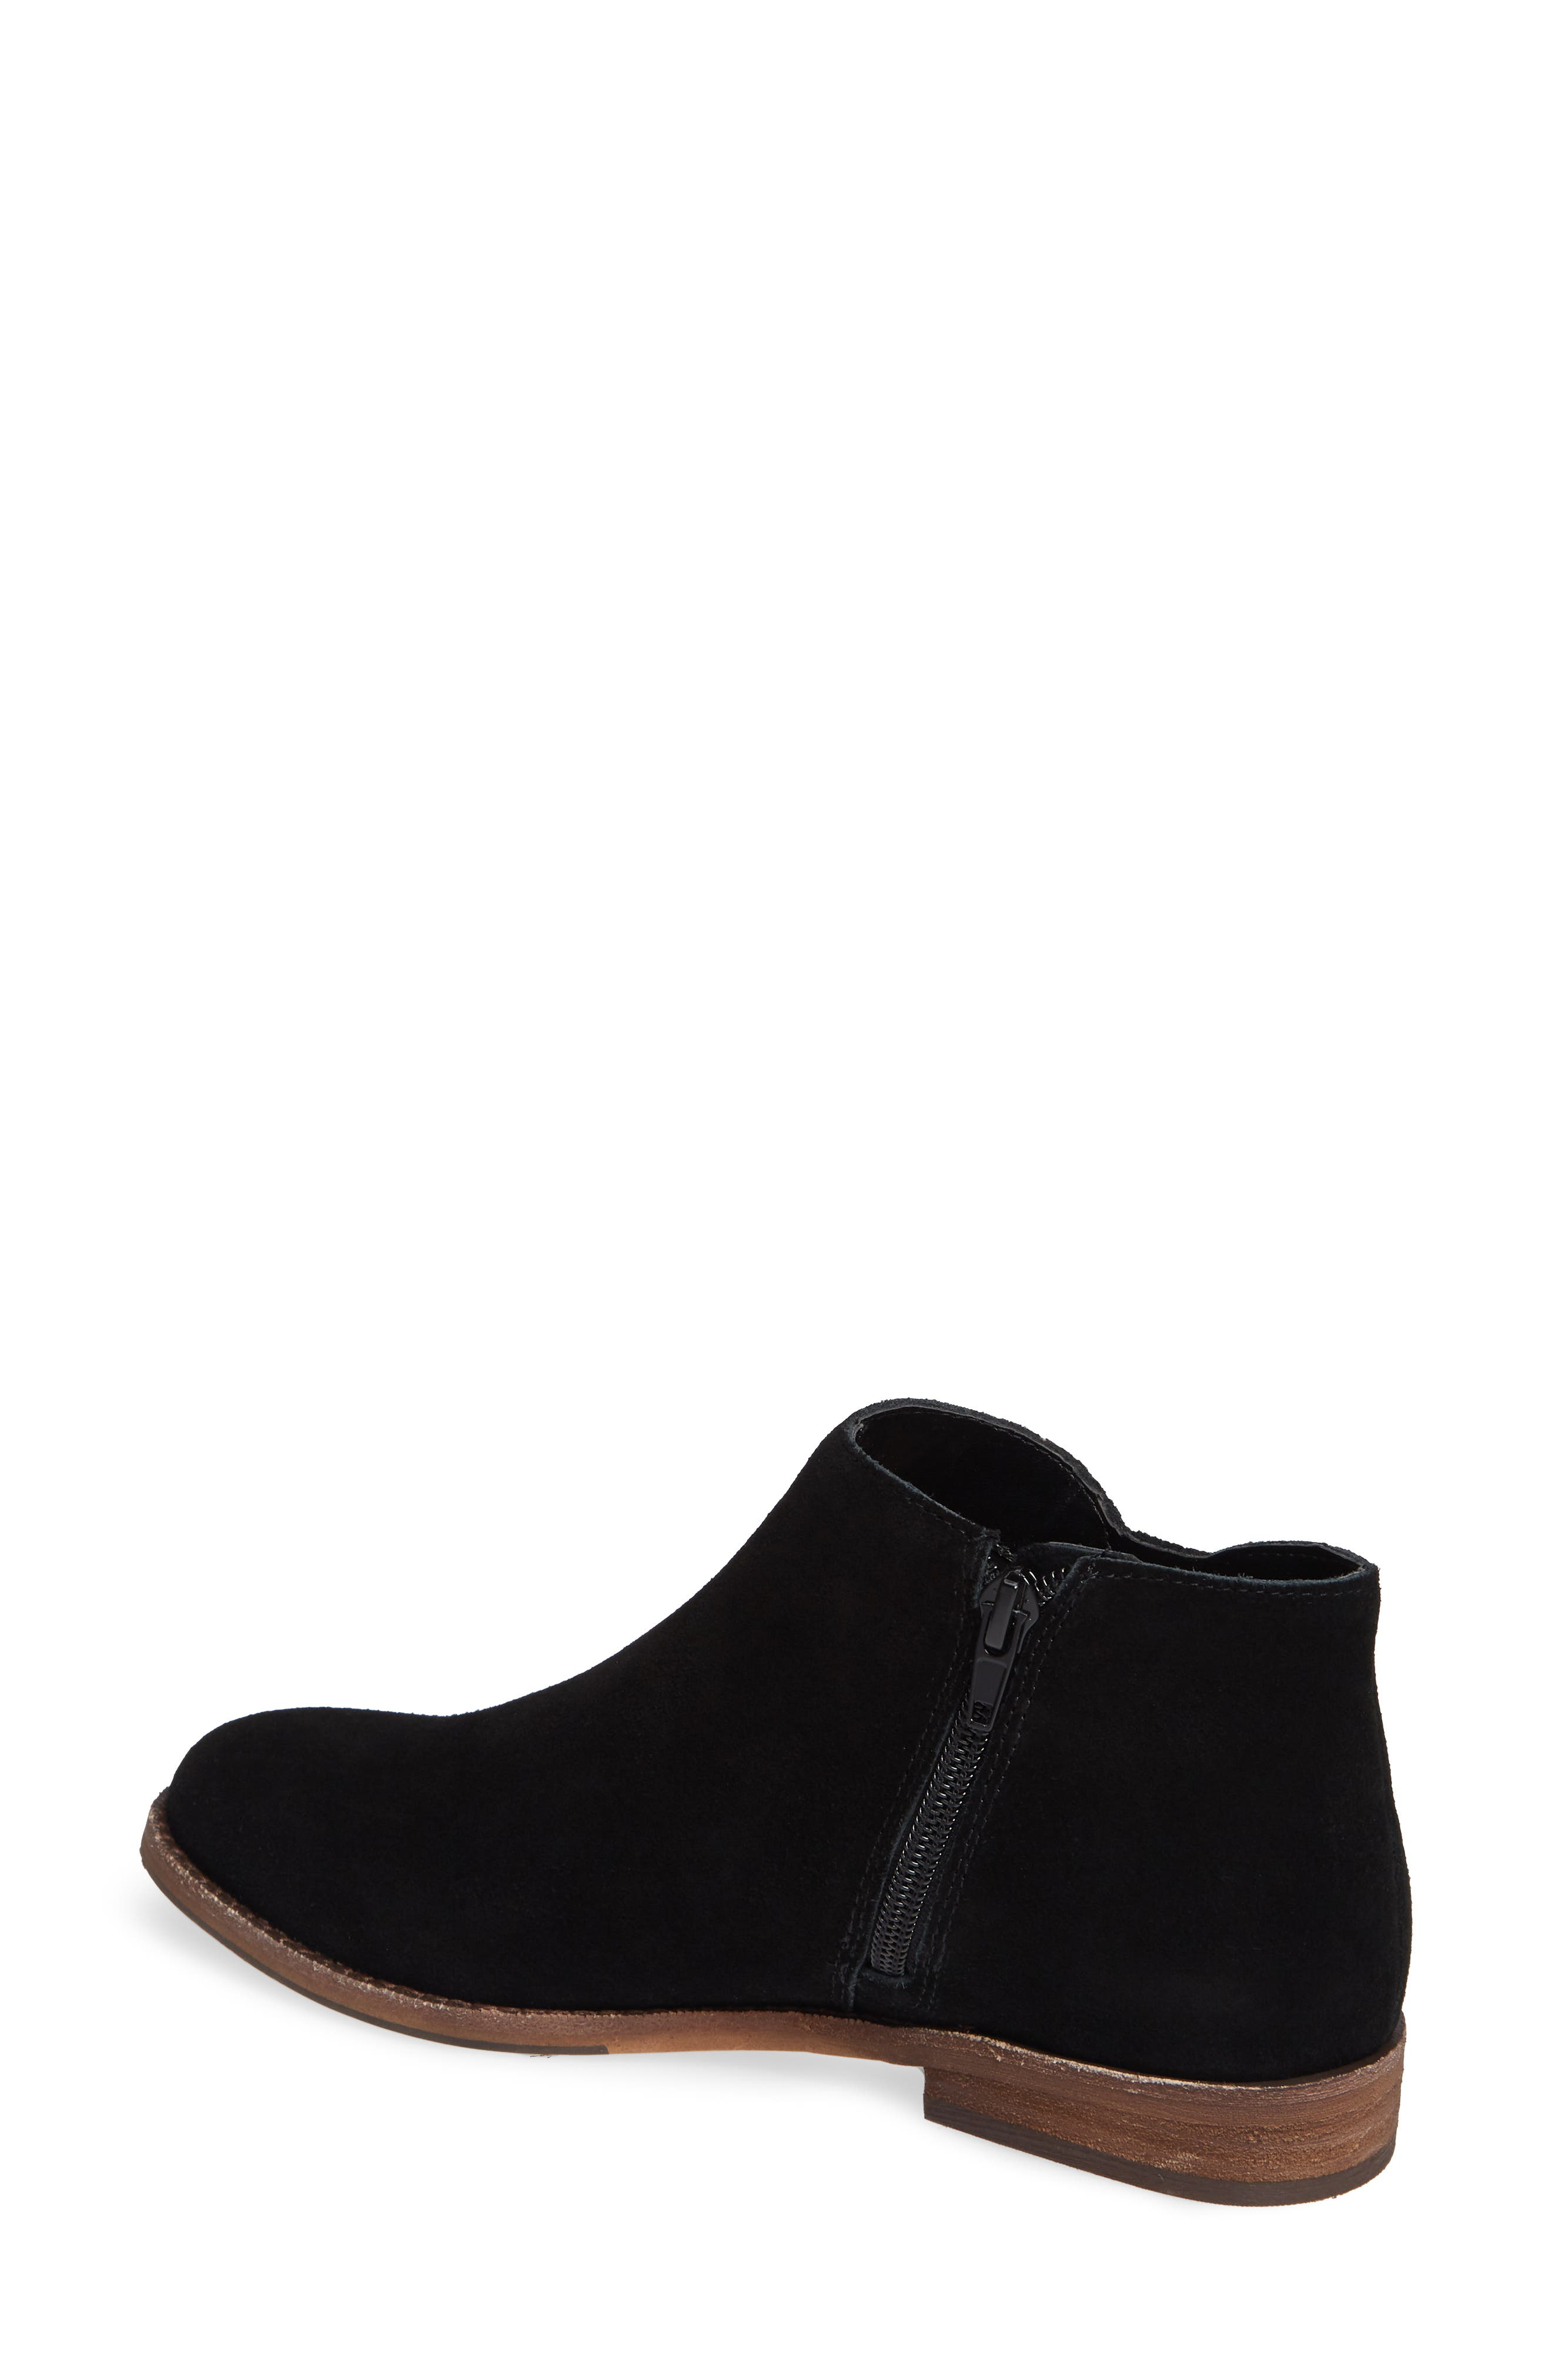 Bevlyn Bootie,                             Alternate thumbnail 2, color,                             BLACK SUEDE